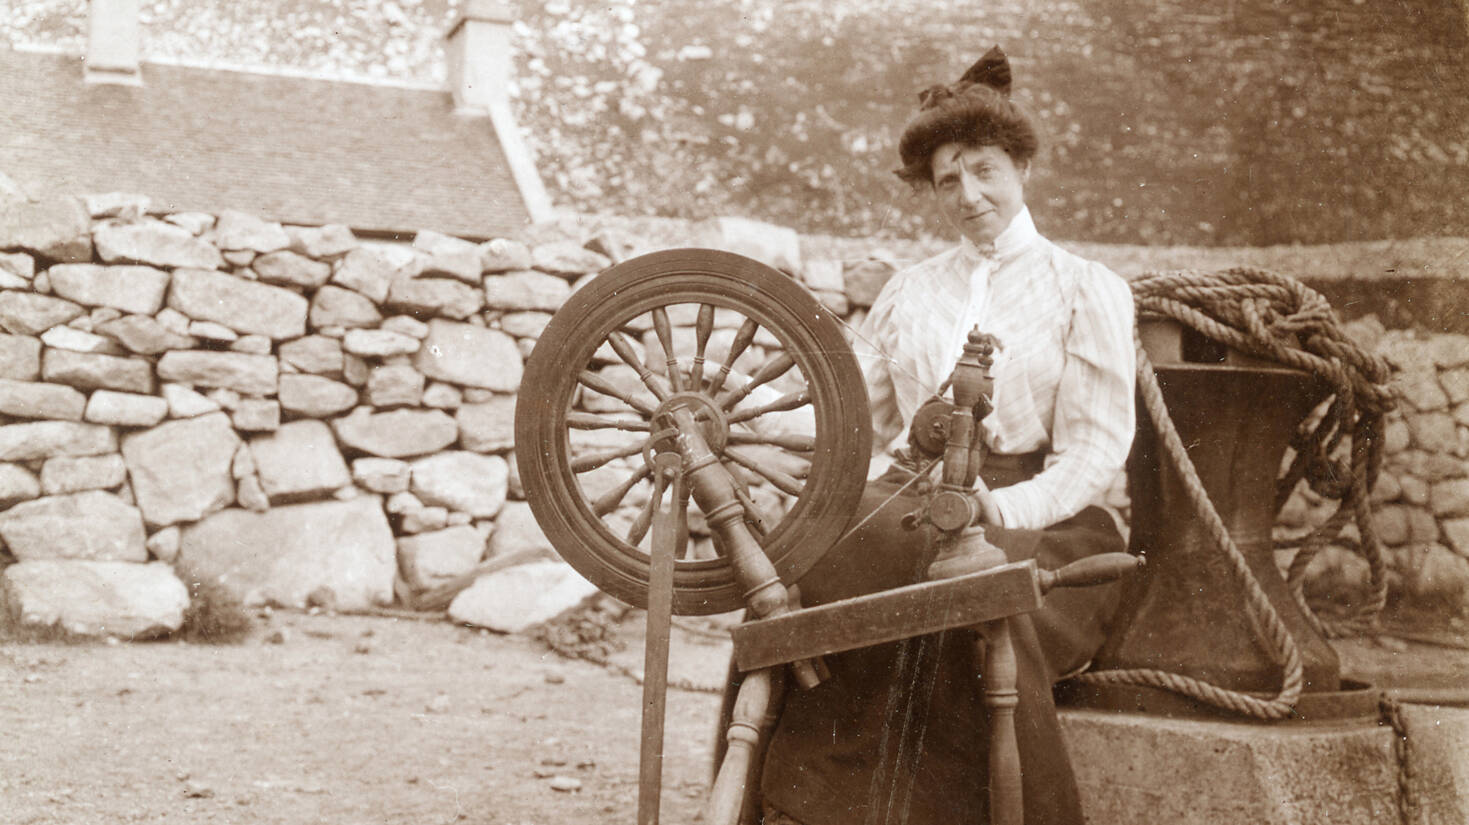 Alice MacLachlan working a spinning wheel on St Kilda in 1907